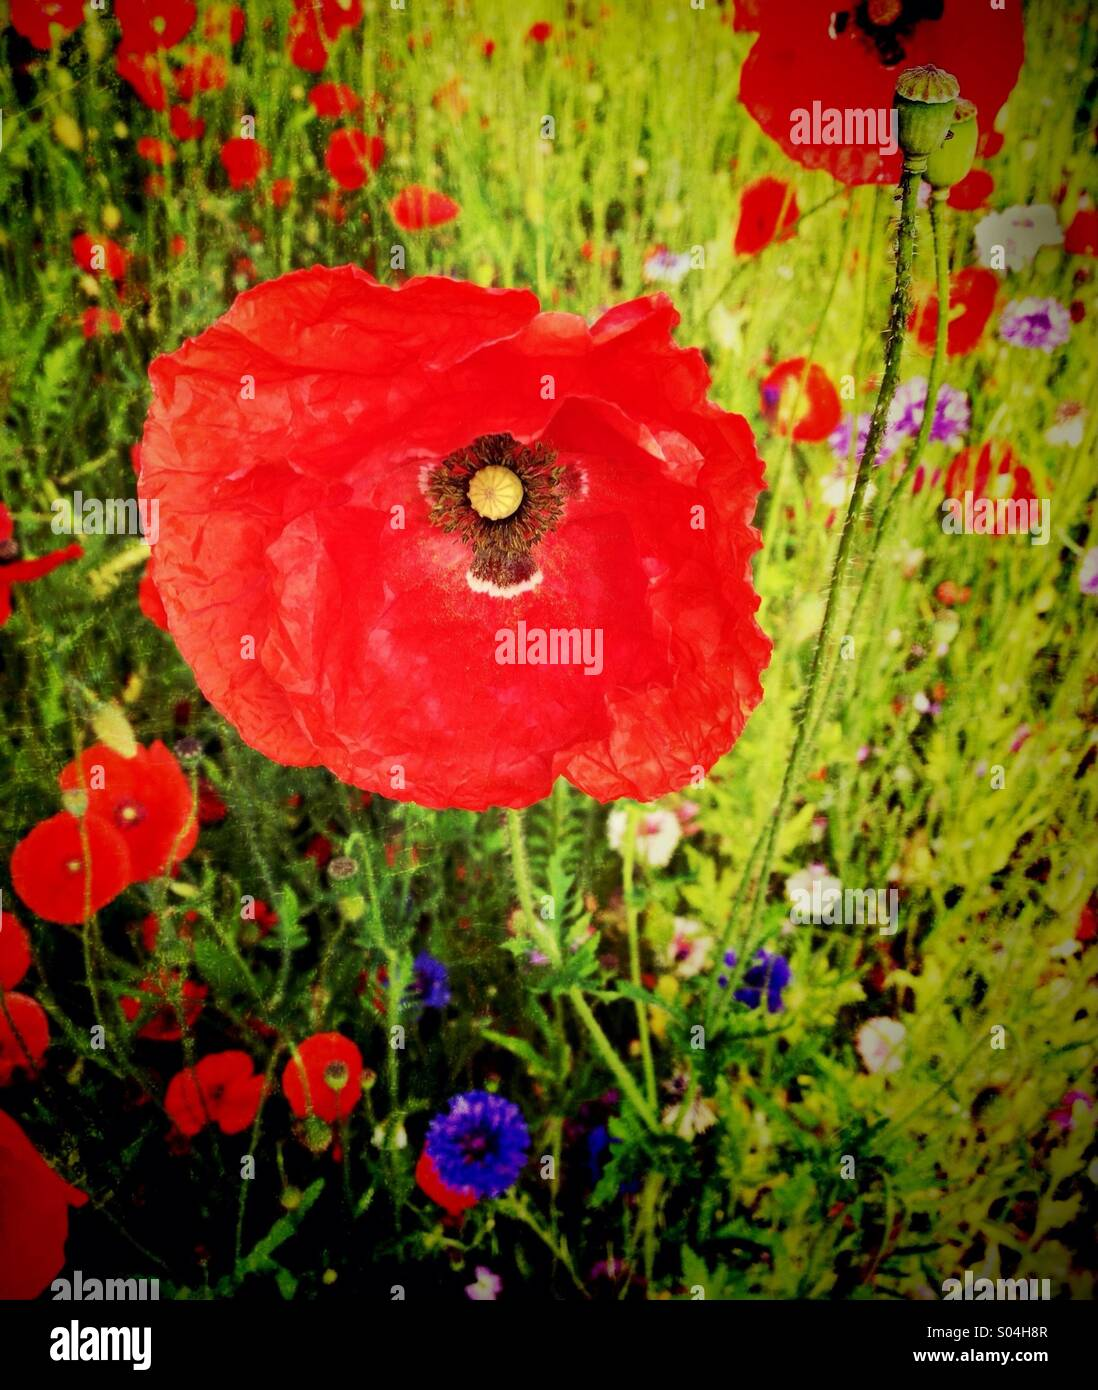 Poppies and wild flowers - Stock Image